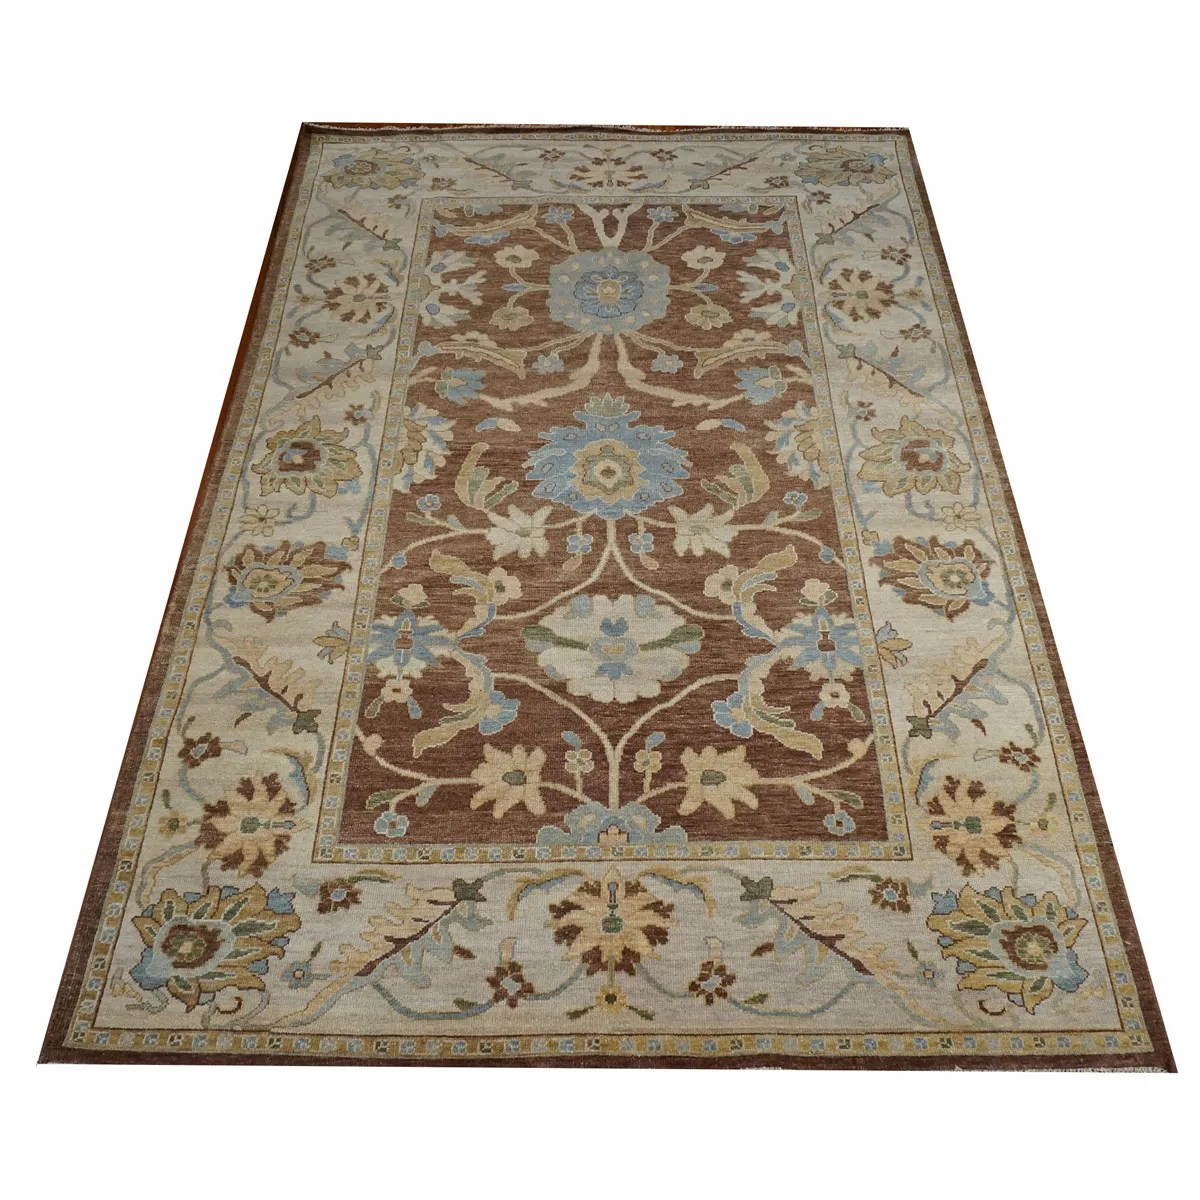 www.ashlyrugs.com - Sultanabad Masters Collection 6 x 9 Rug